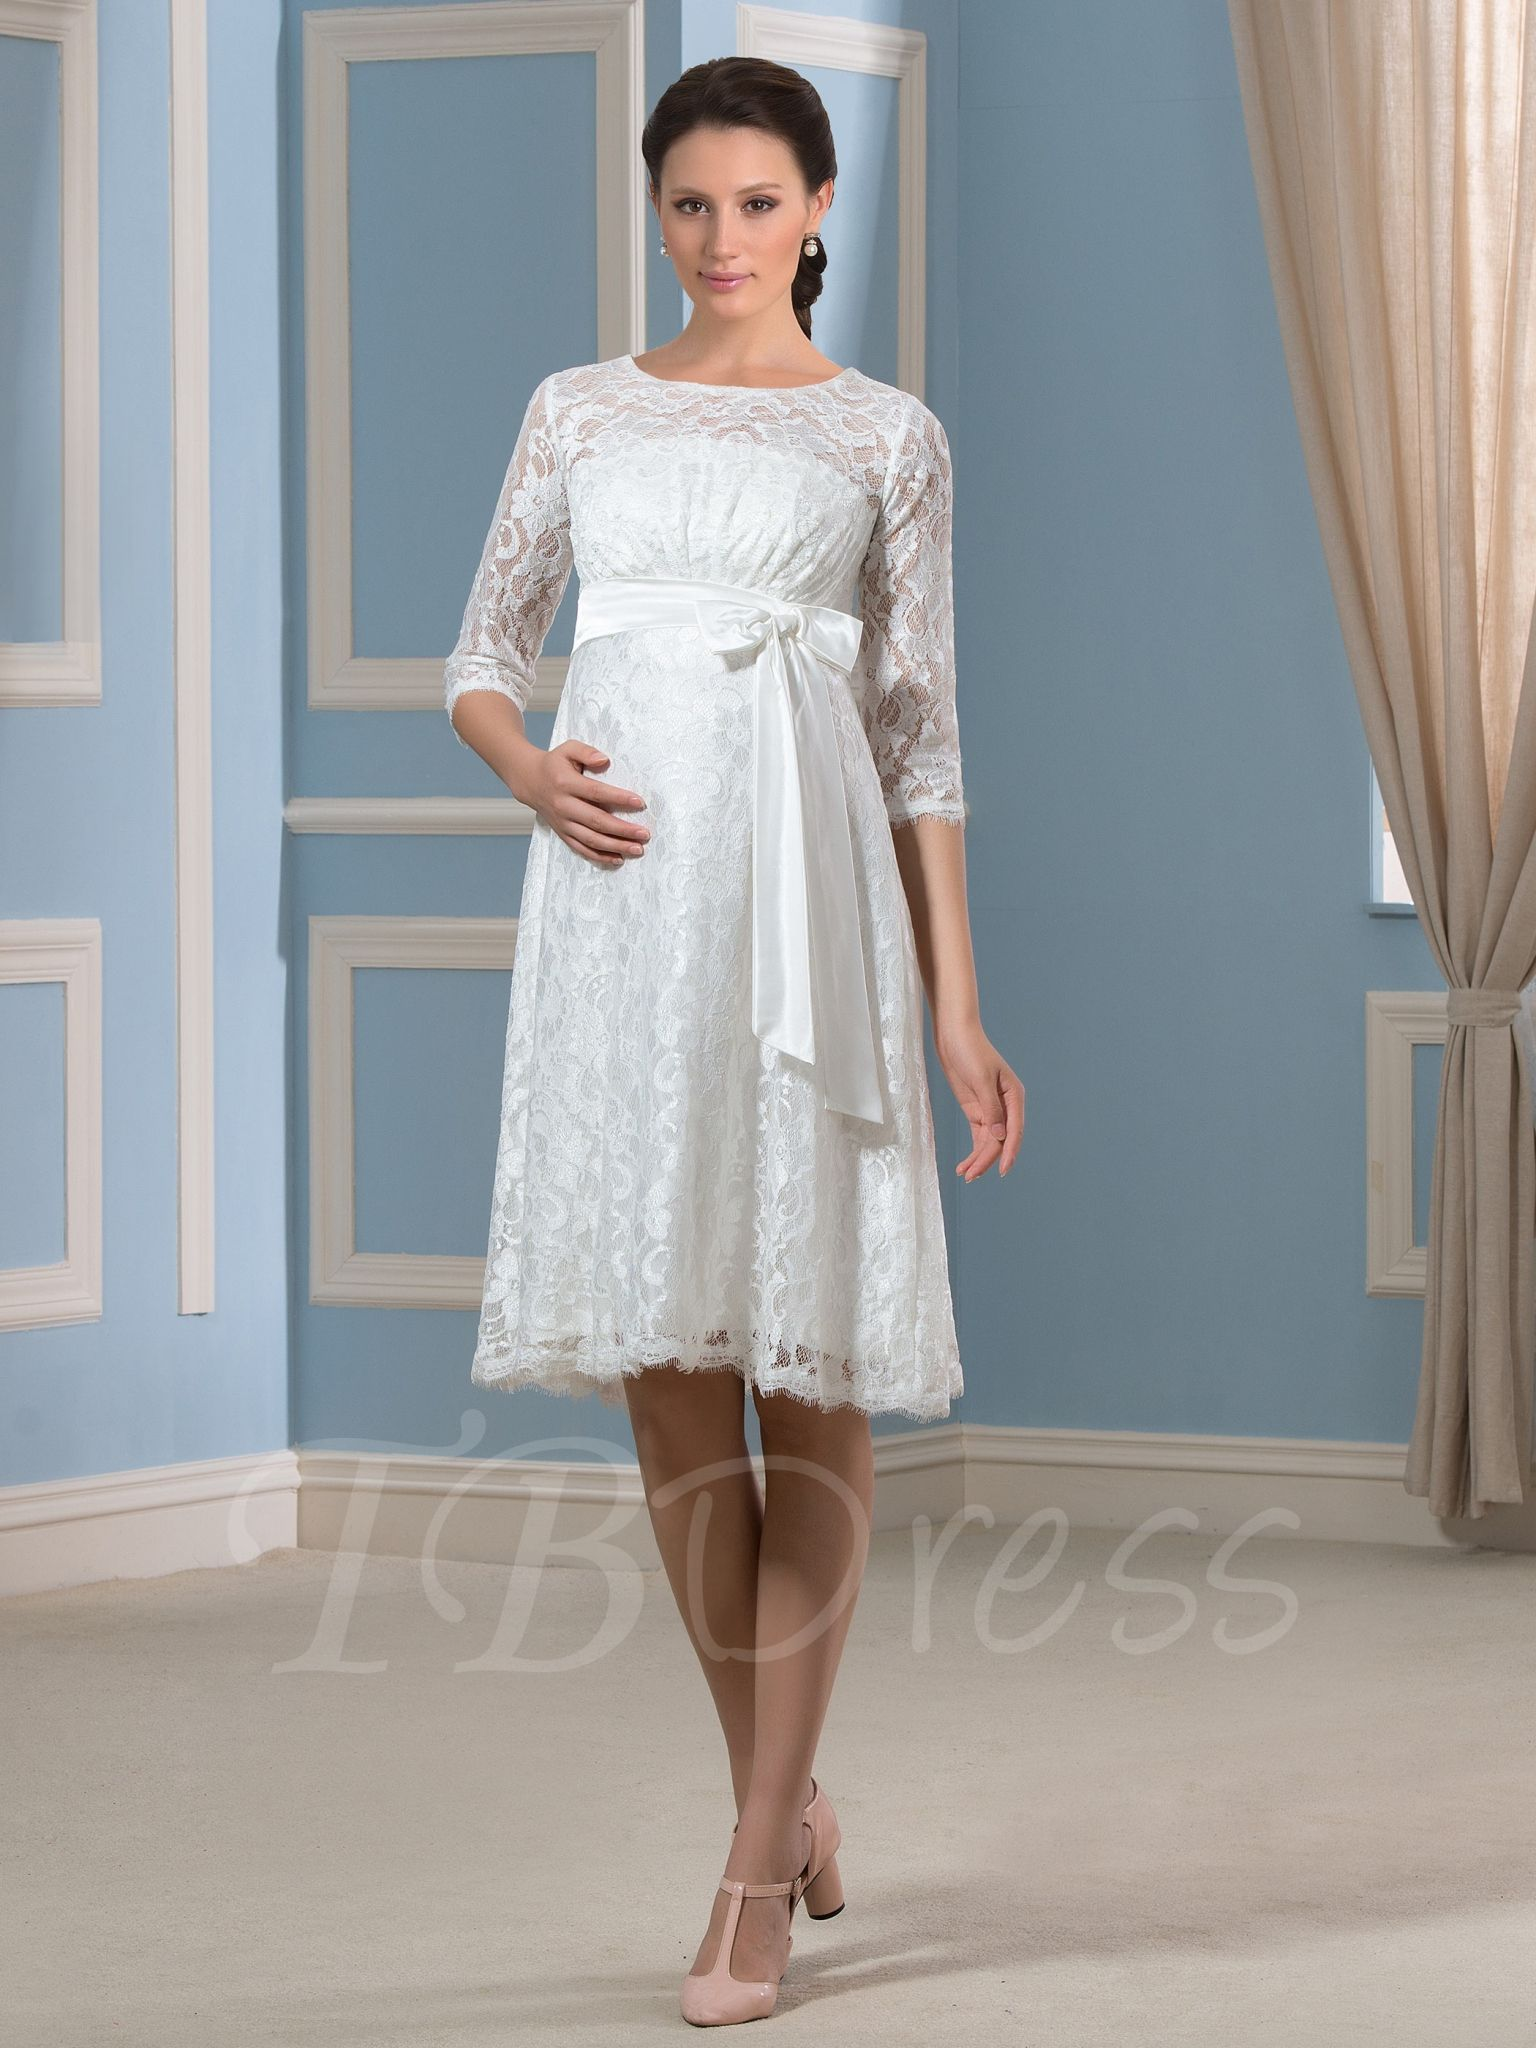 Cheap Maternity Wedding Dresses - Country Dresses for Weddings Check ...